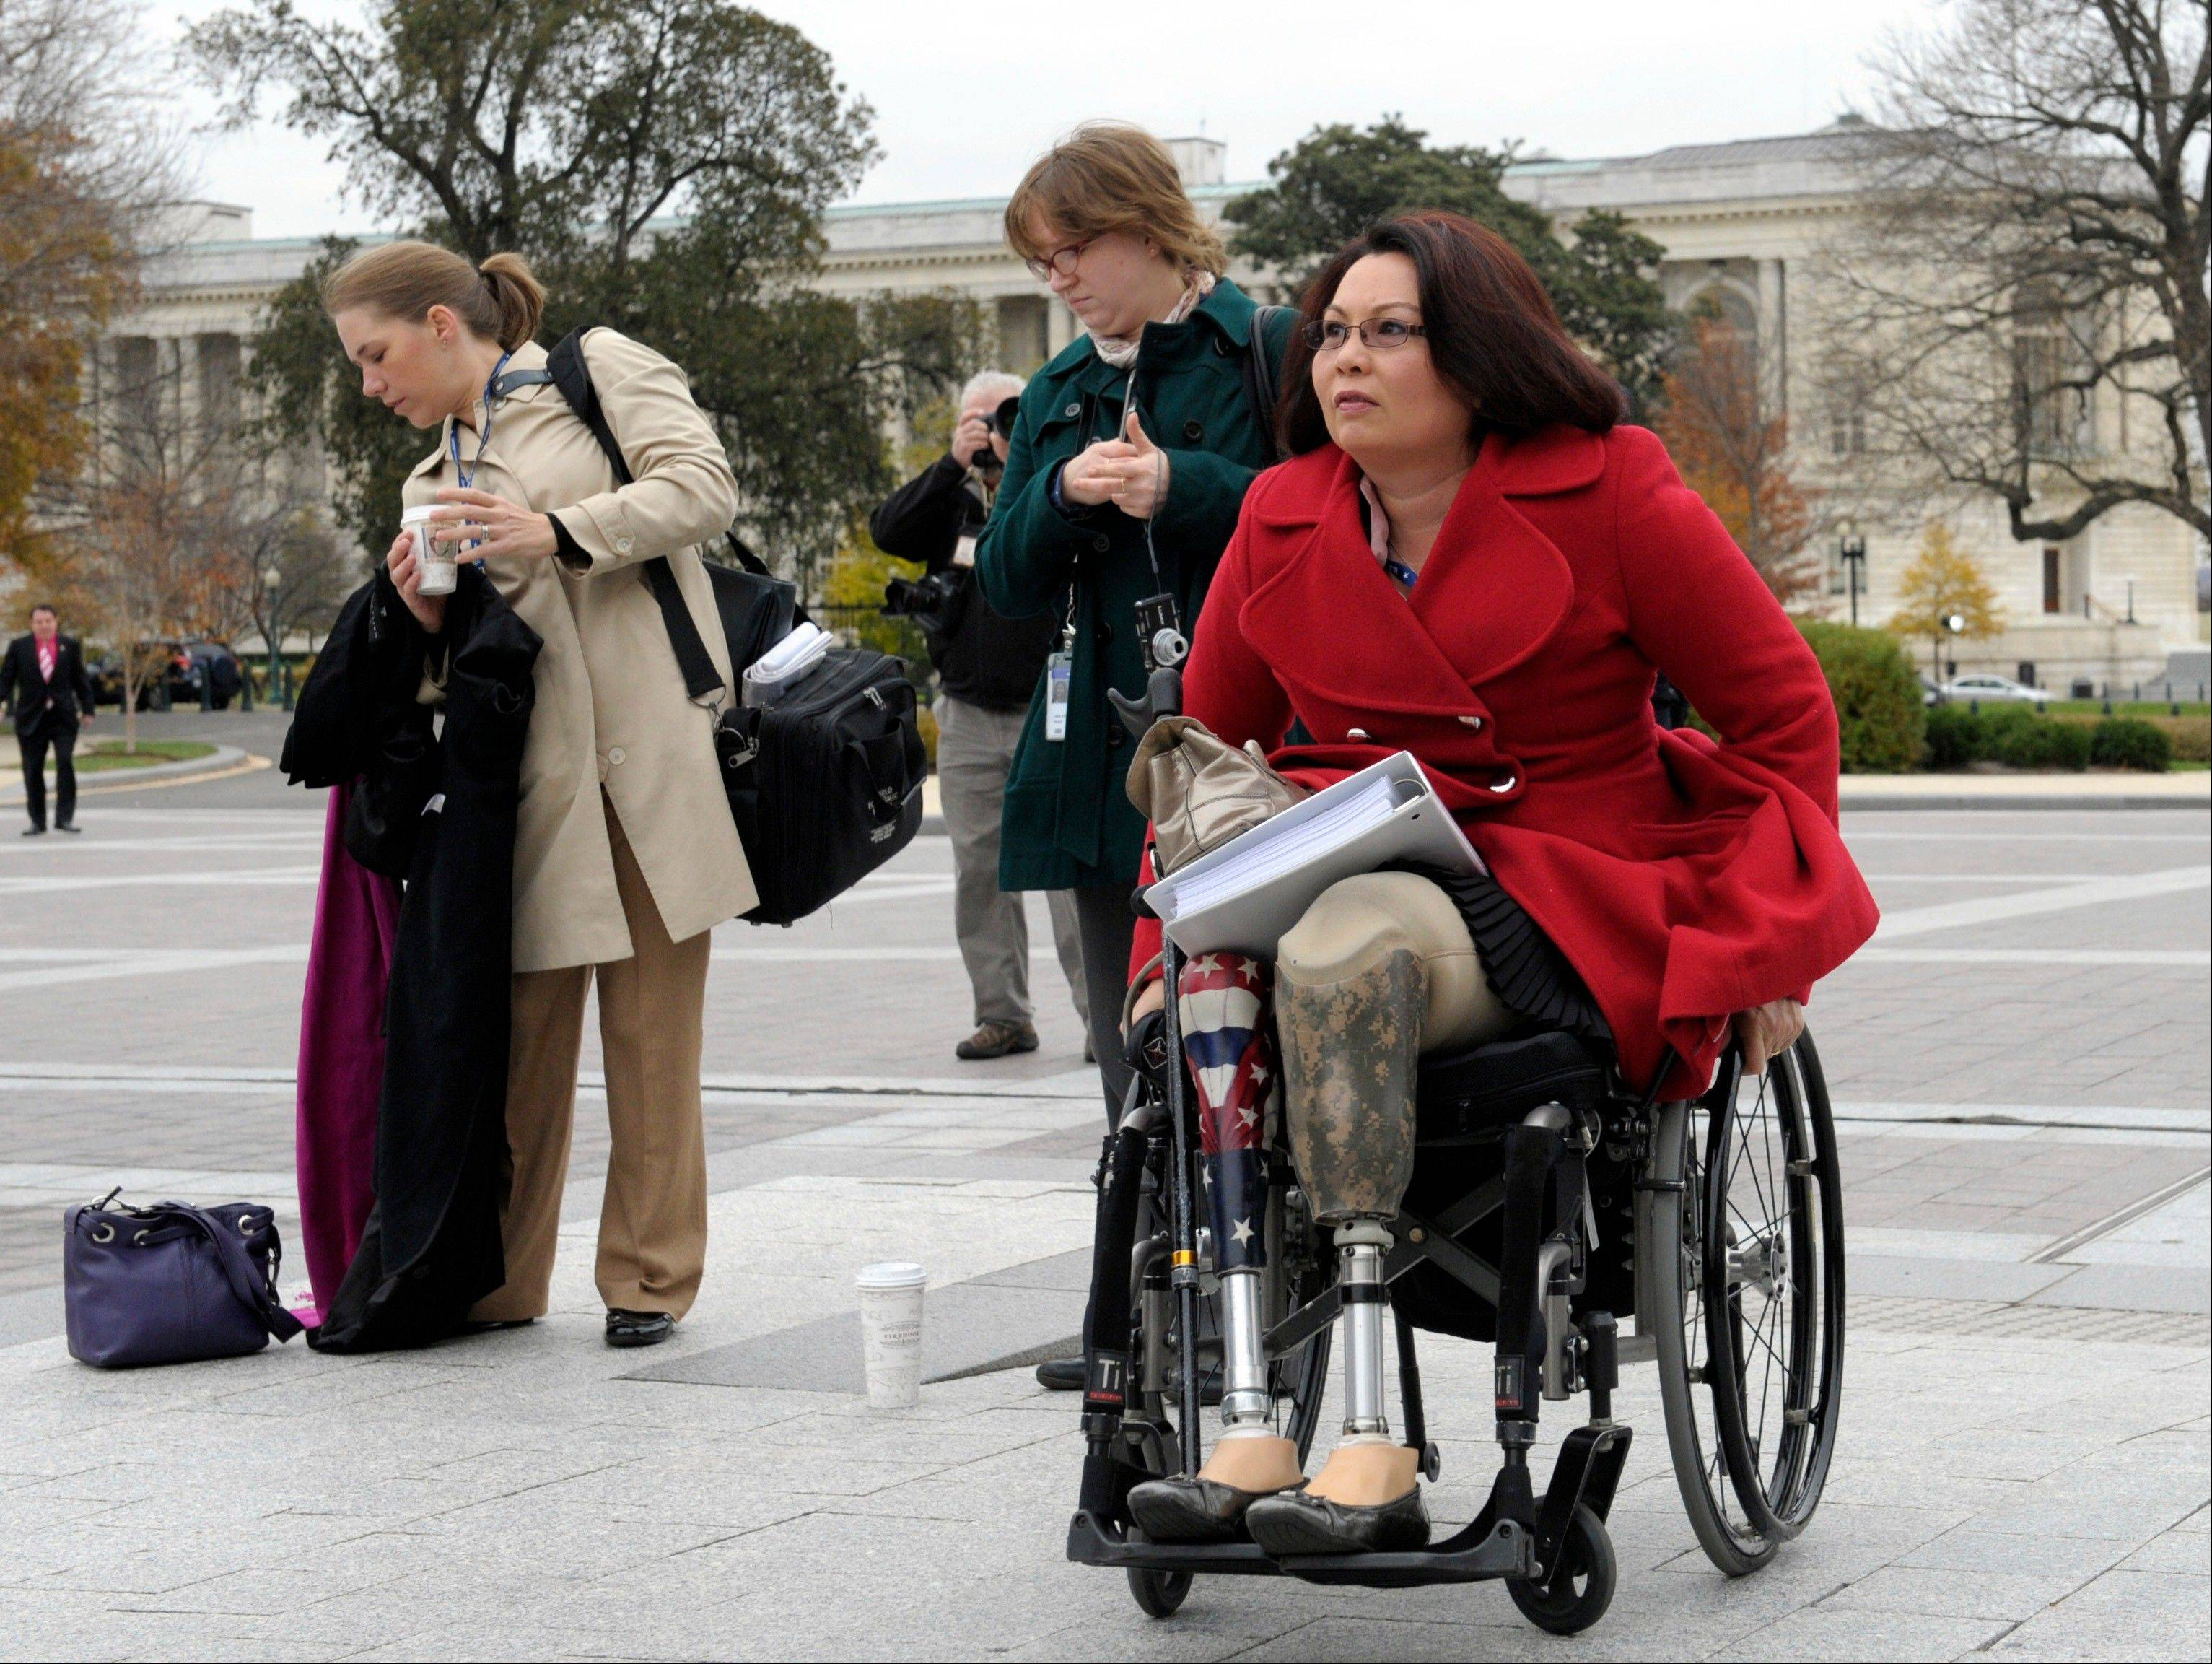 Rep.-elect Tammy Duckworth, who lost both legs in combat before turning to politics, arrives for a group photo on the East steps of the Capitol in Washington. Veterans groups say the influx of Iraq and Afghanistan veterans in Congress is welcome because it comes at a time when the overall number of veterans in Congress is on a steep and steady decline. In the mid-1970s, the vast majority of lawmakers tended to be veterans.